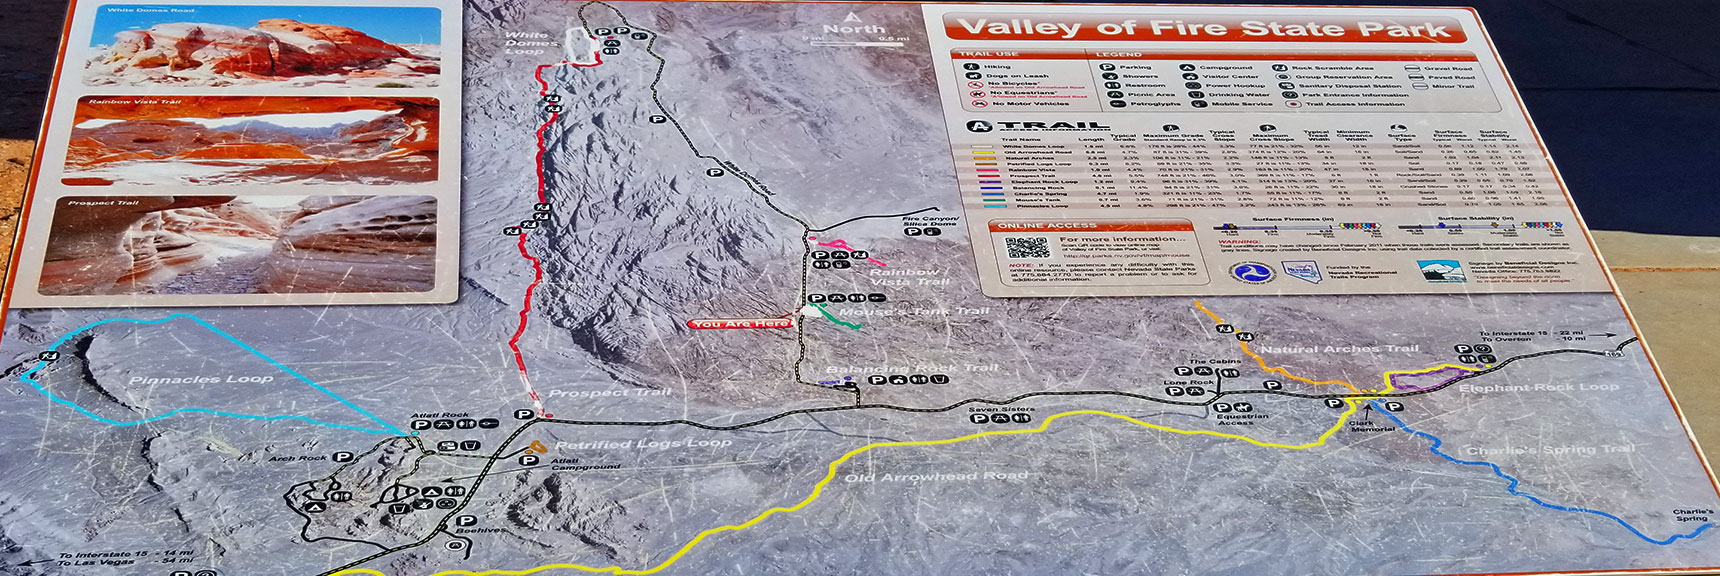 Valley of Fire State Park, Nevada Map